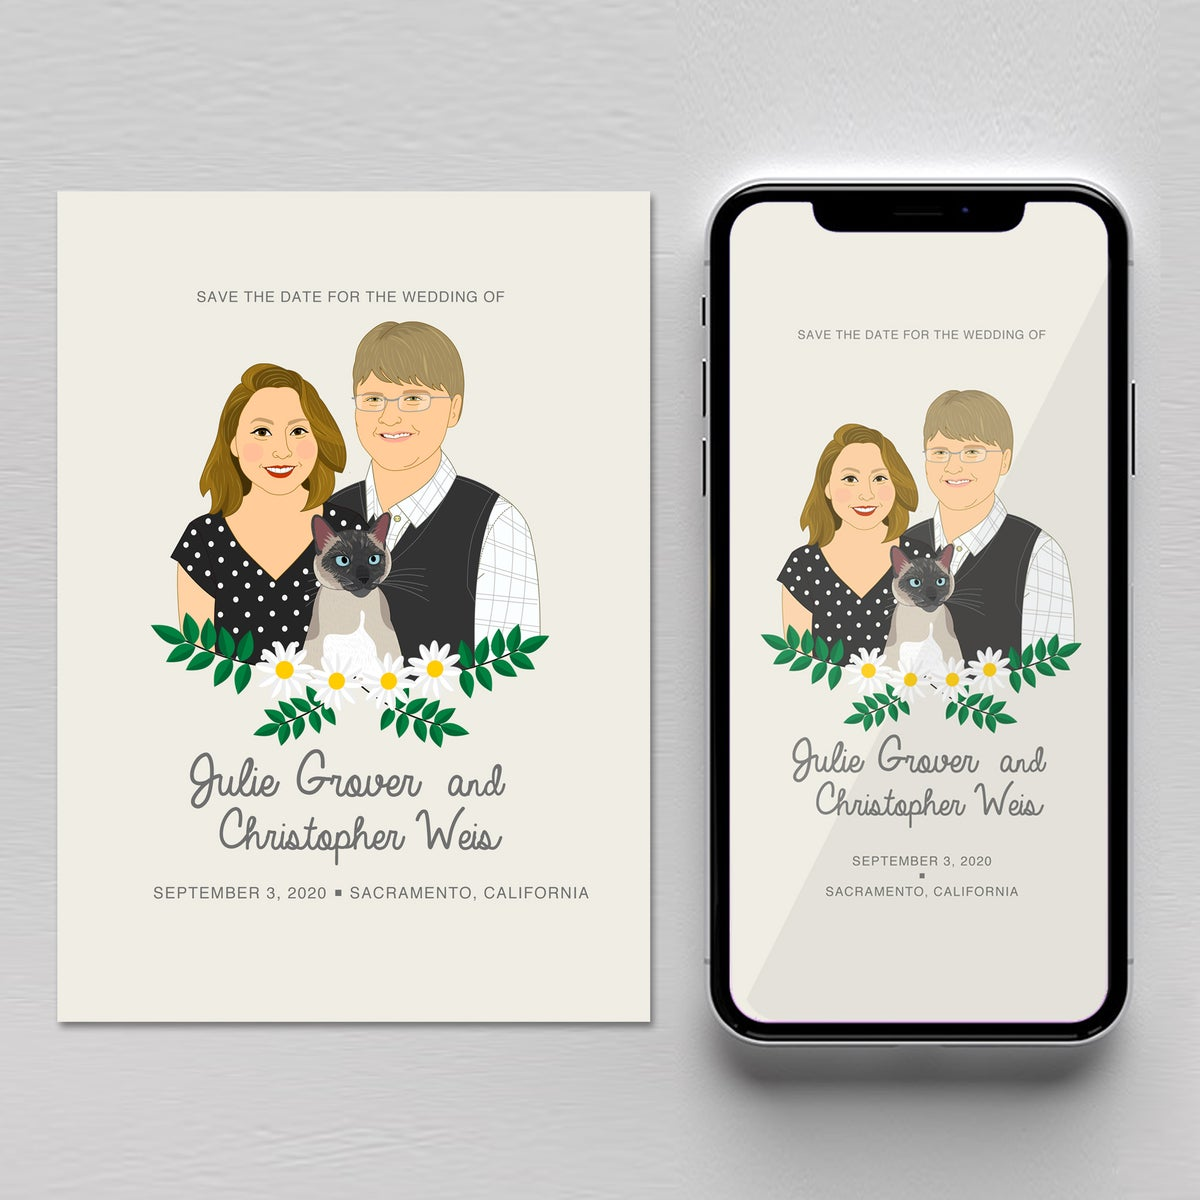 Image of Eco friendly save the date.